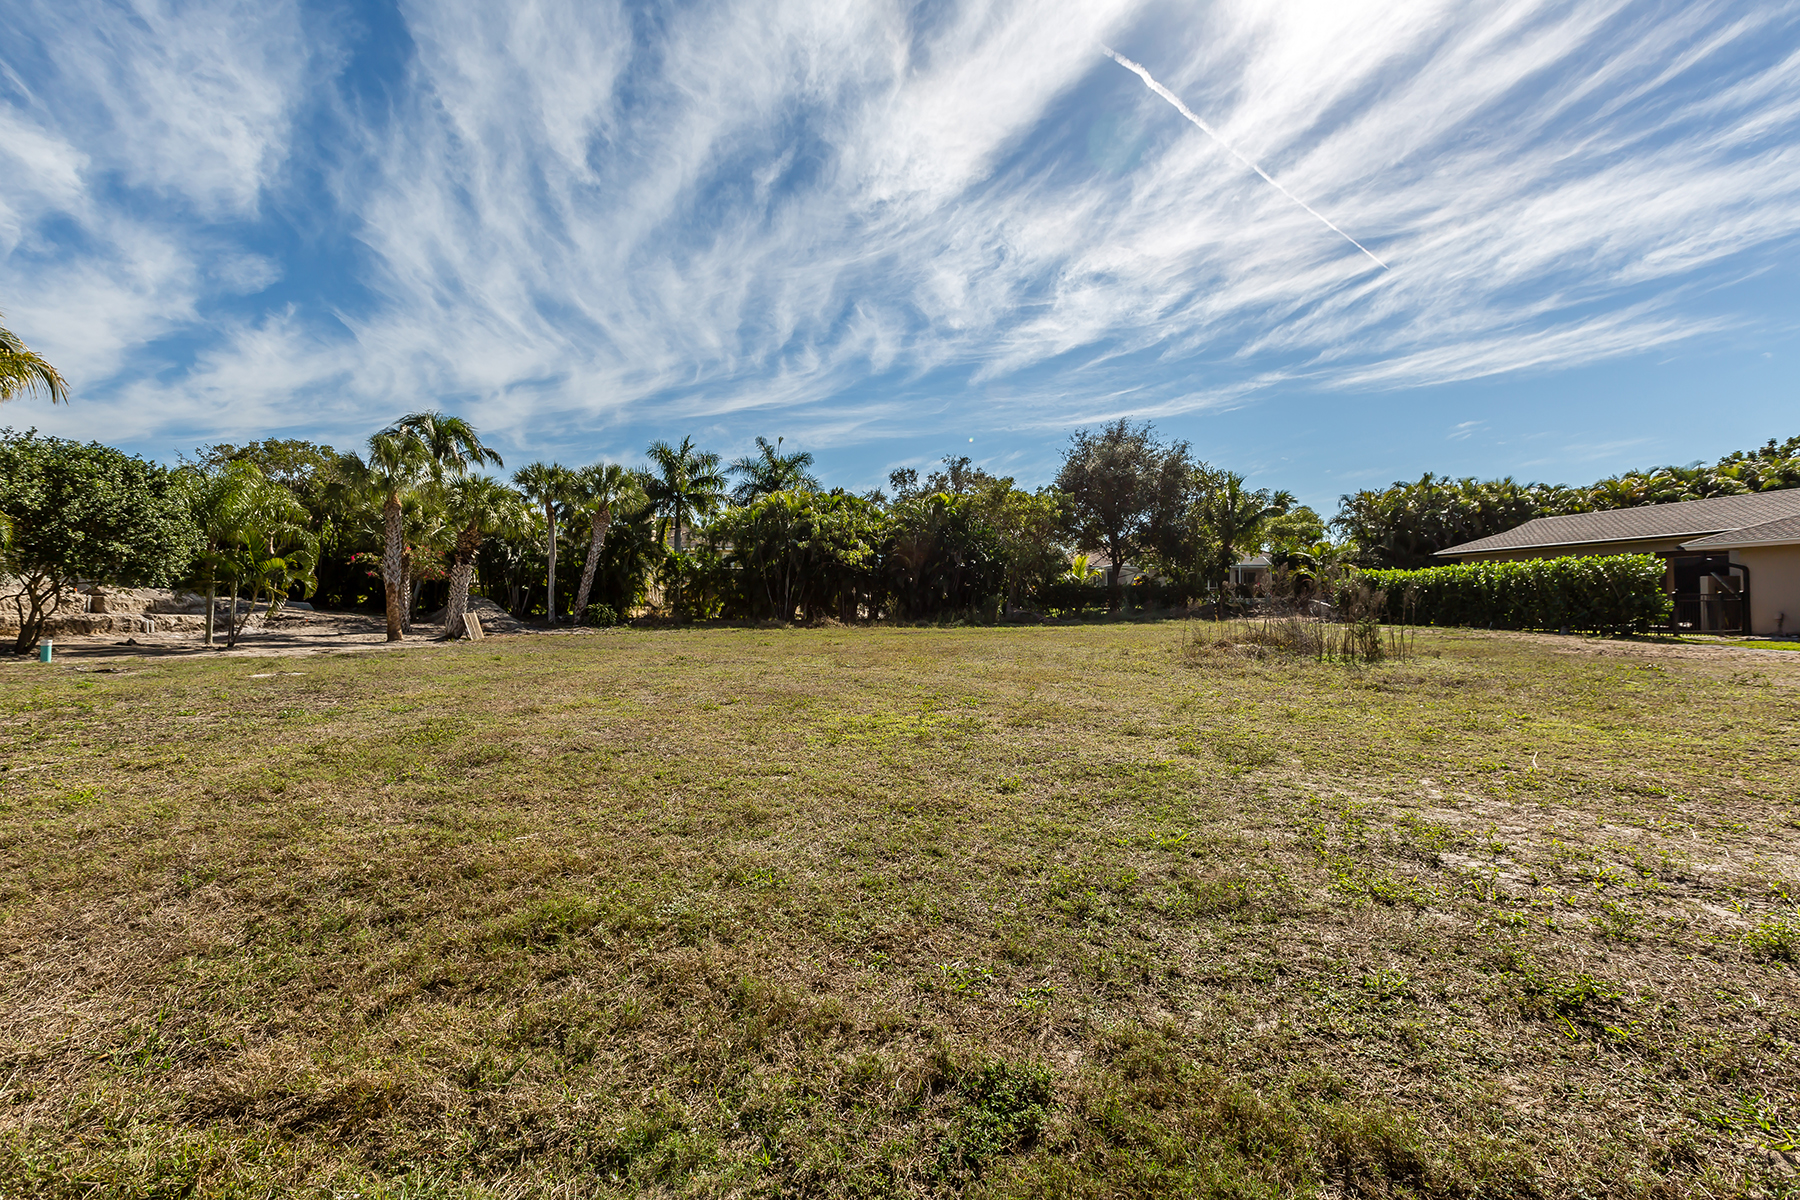 Land for Sale at MARCO ISLAND 821 Barfield Dr Marco Island, Florida, 34145 United States